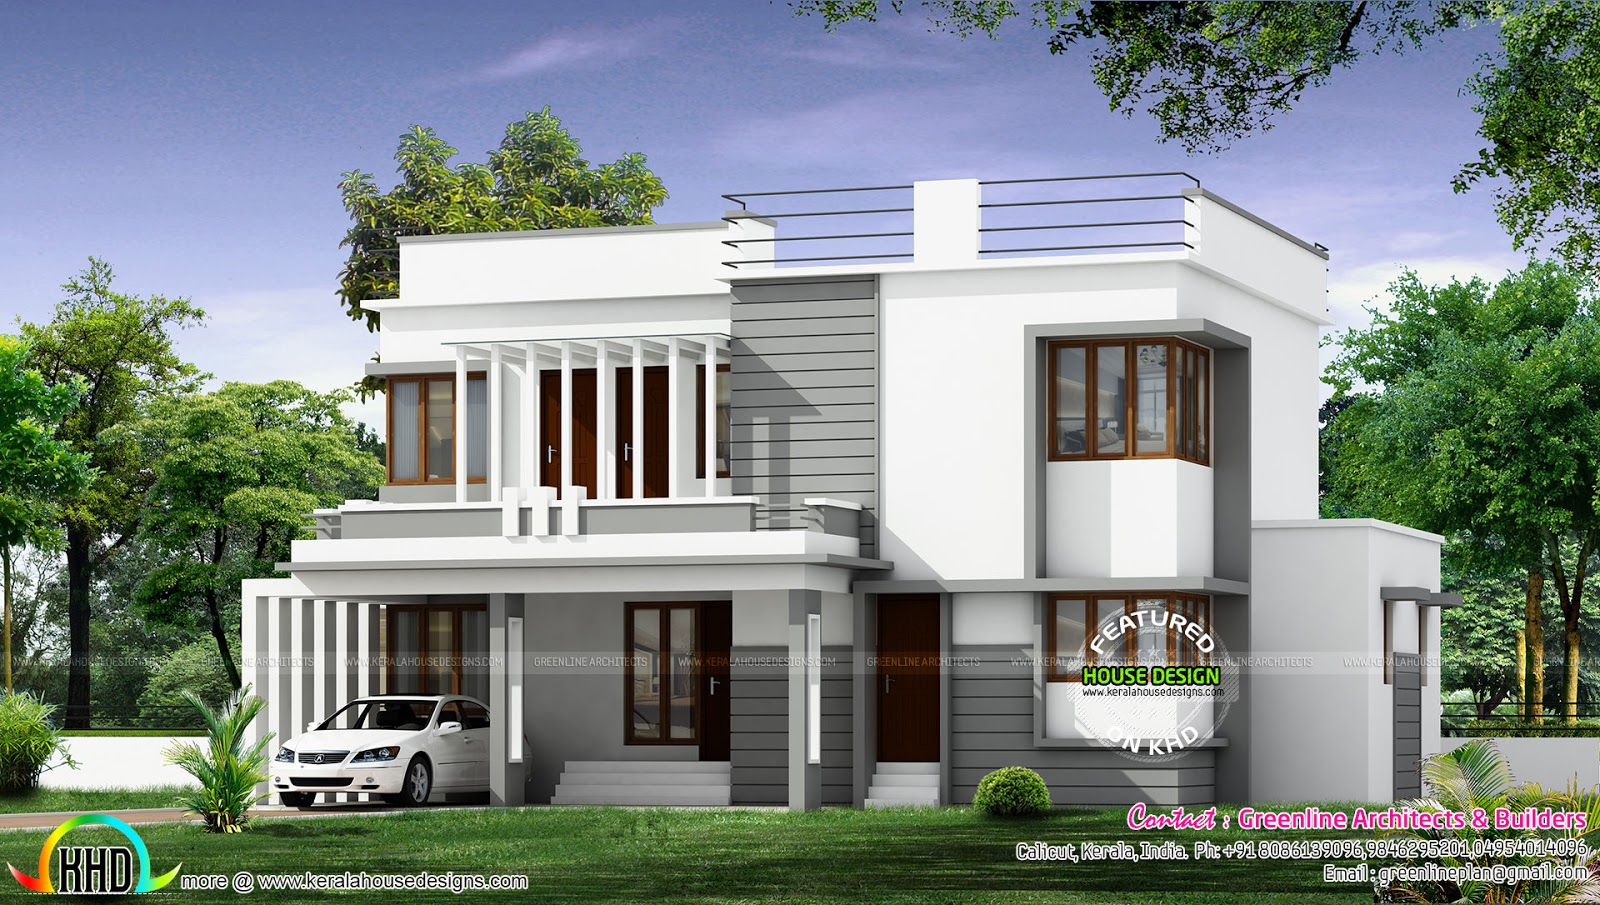 New modern house architecture - Kerala home design and ...